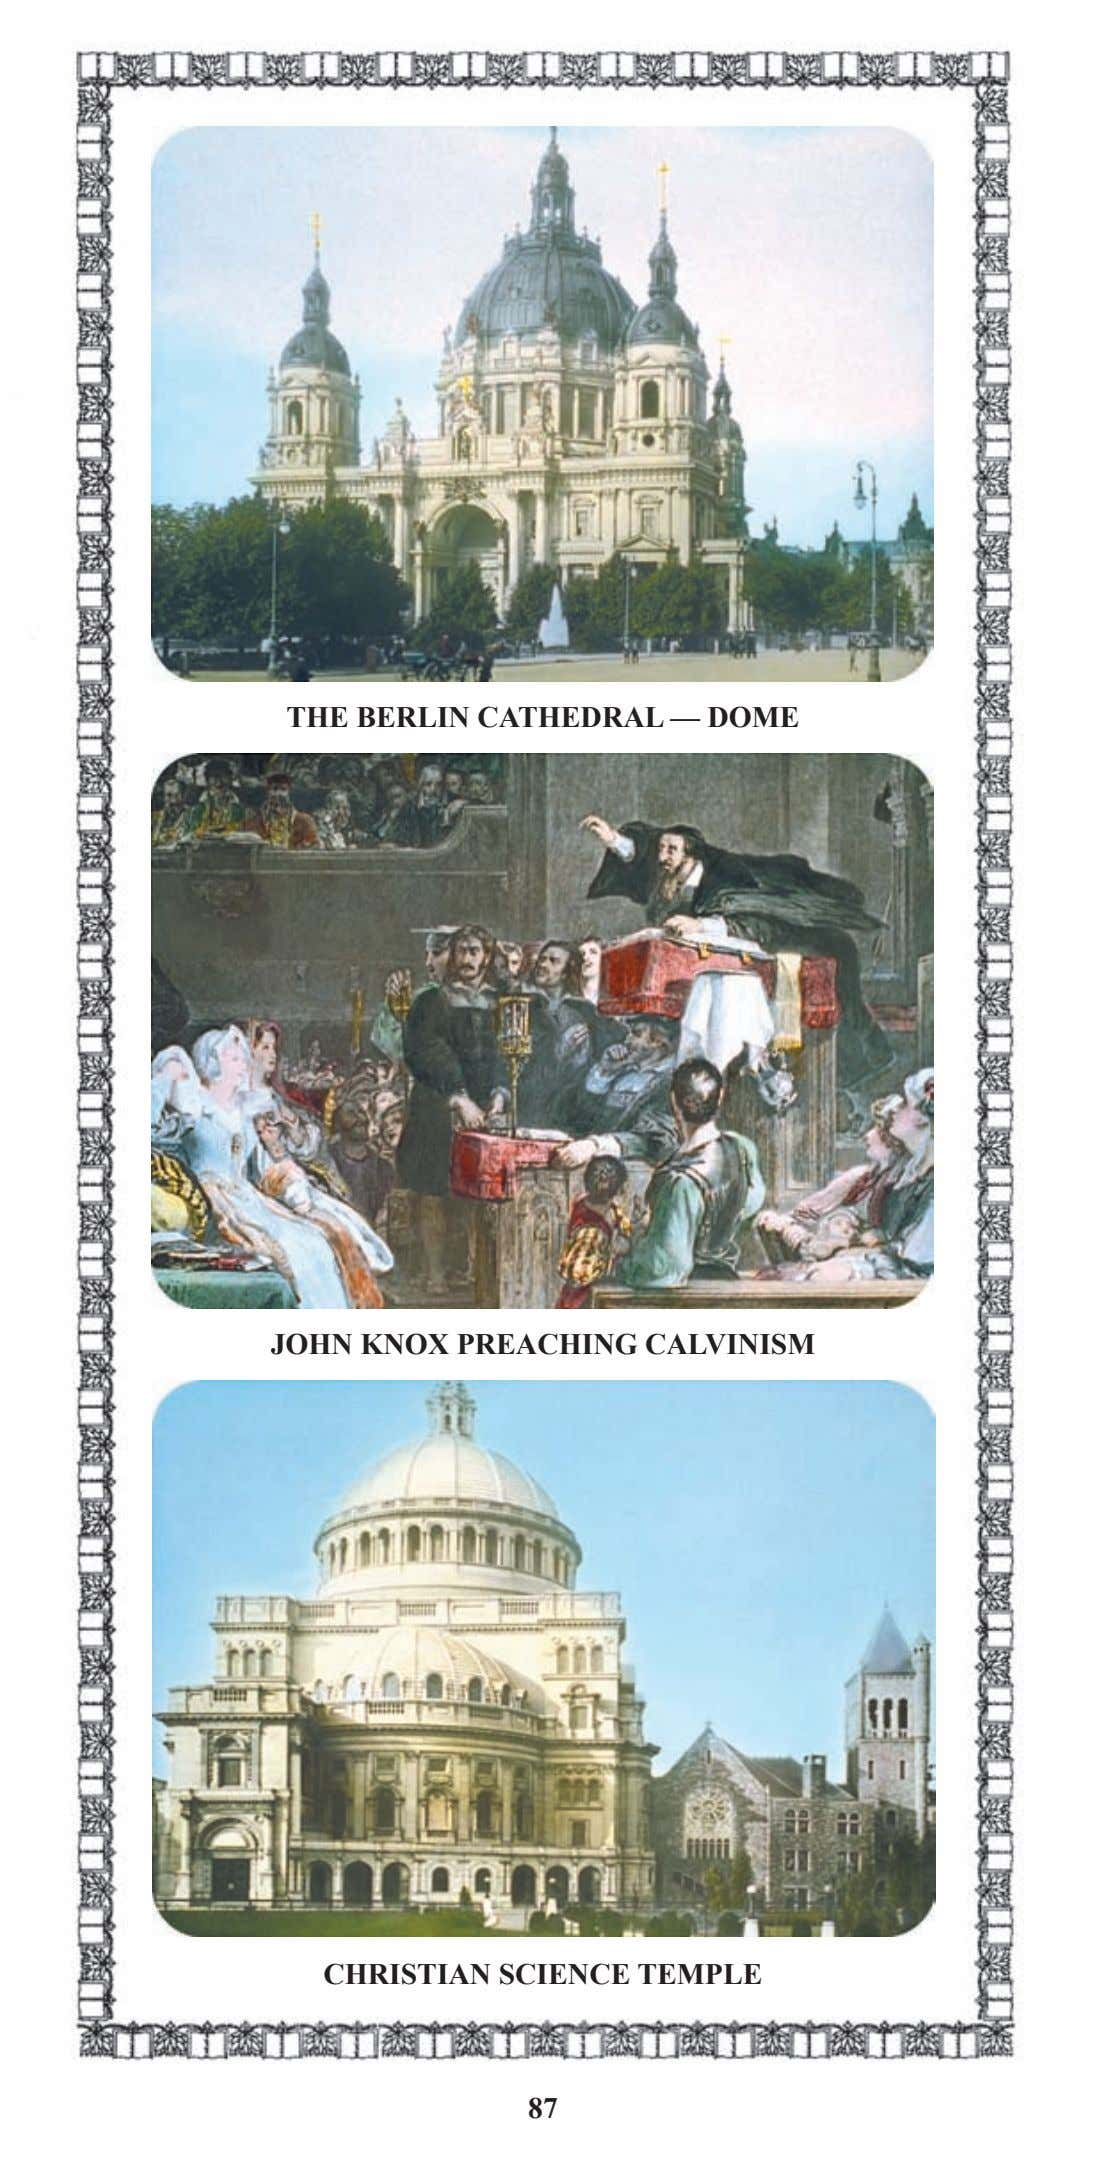 THE BERLIN CATHEDRAL — DOME JOHN KNOX PREACHING CALVINISM CHRISTIAN SCIENCE TEMPLE 87